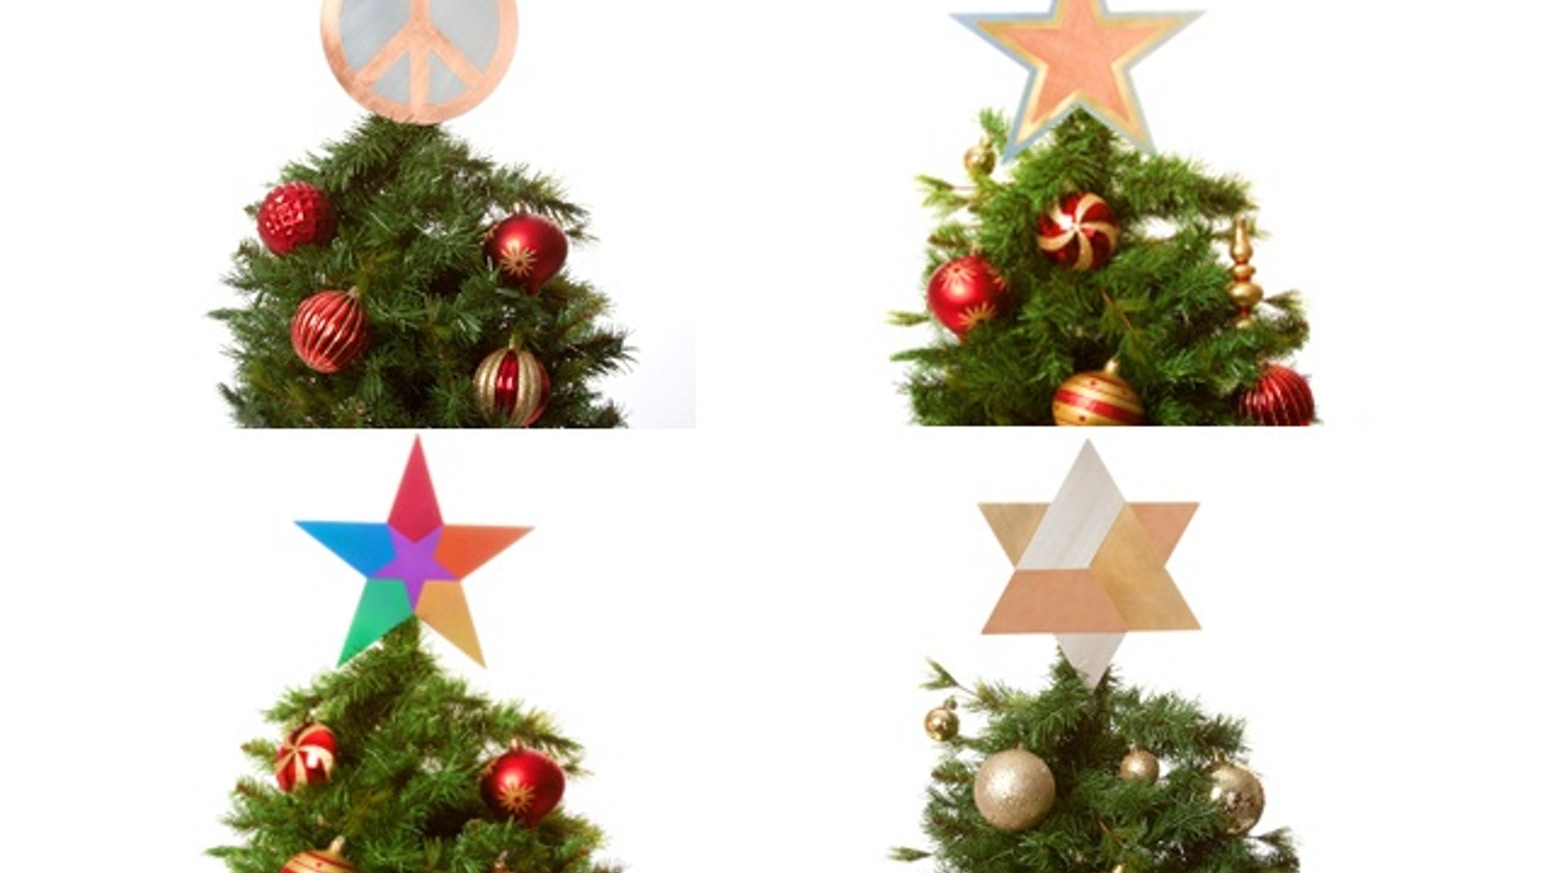 Peace Christmas Tree Topper.Diversity Christmas Tree Toppers Celebrate In Style By